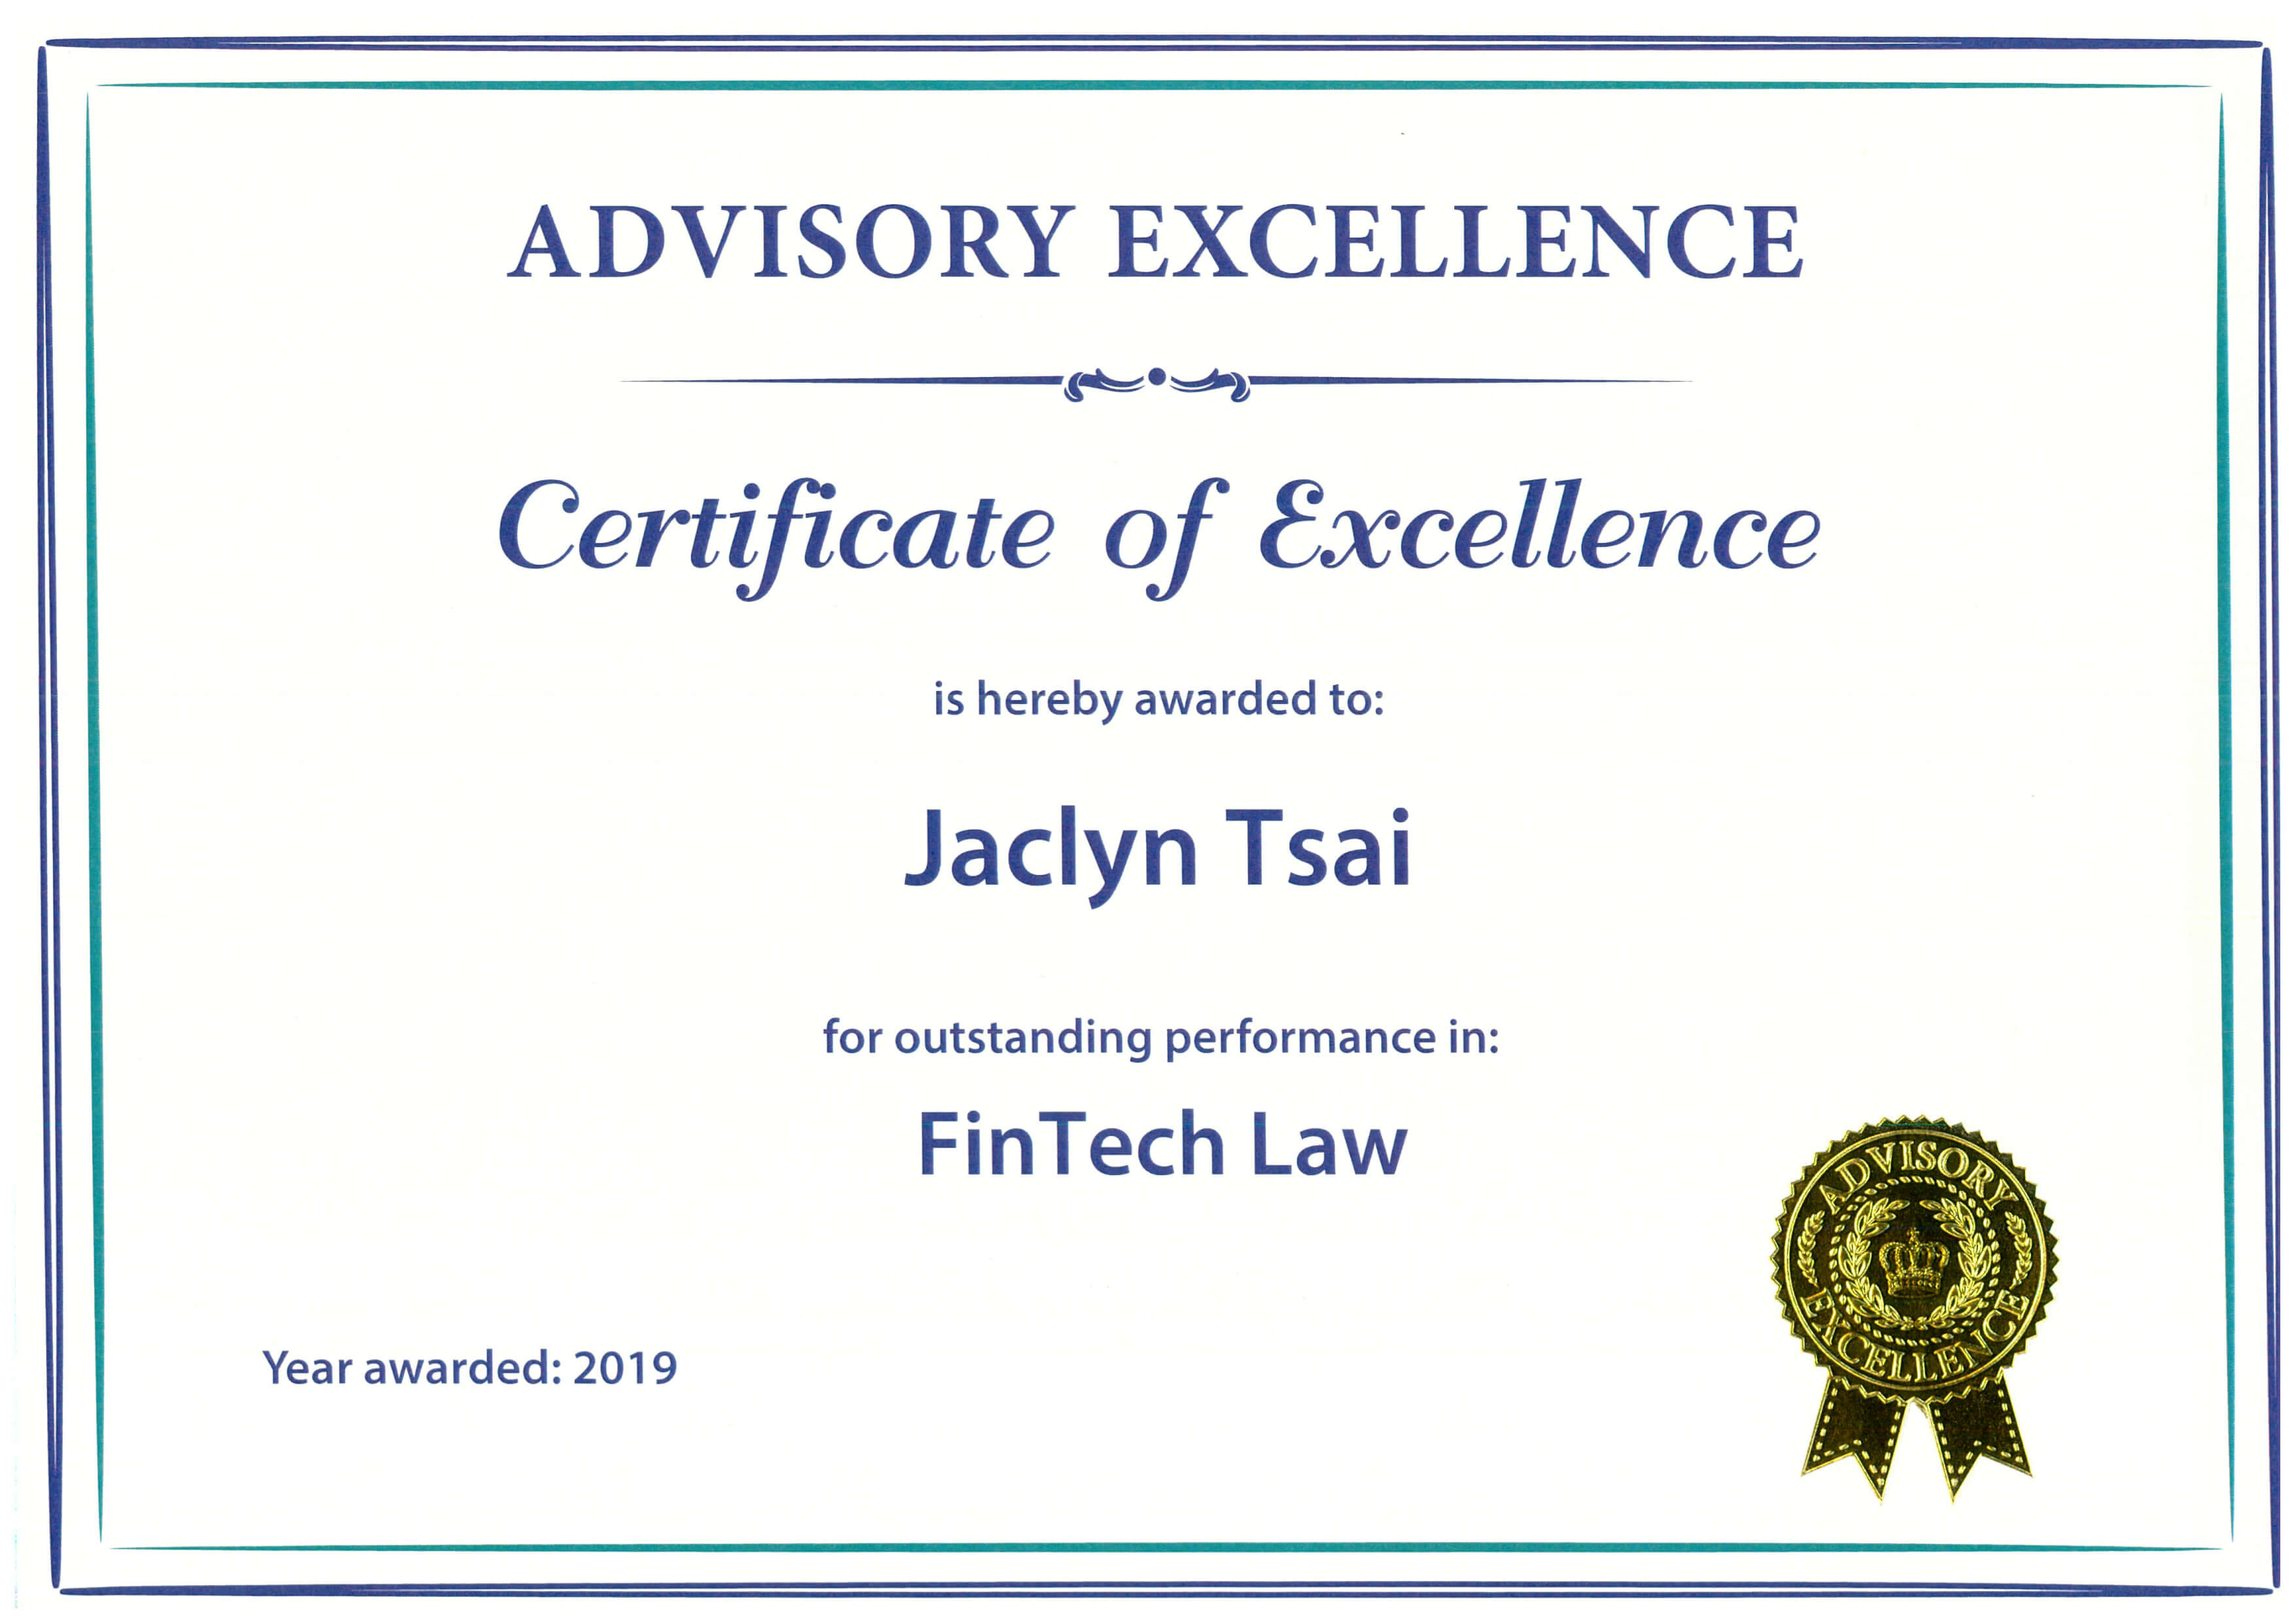 Certificate-of-Excellence--FinTech-Law--Jaclyn-Tsai-(Advisory-Excellenece)20190725